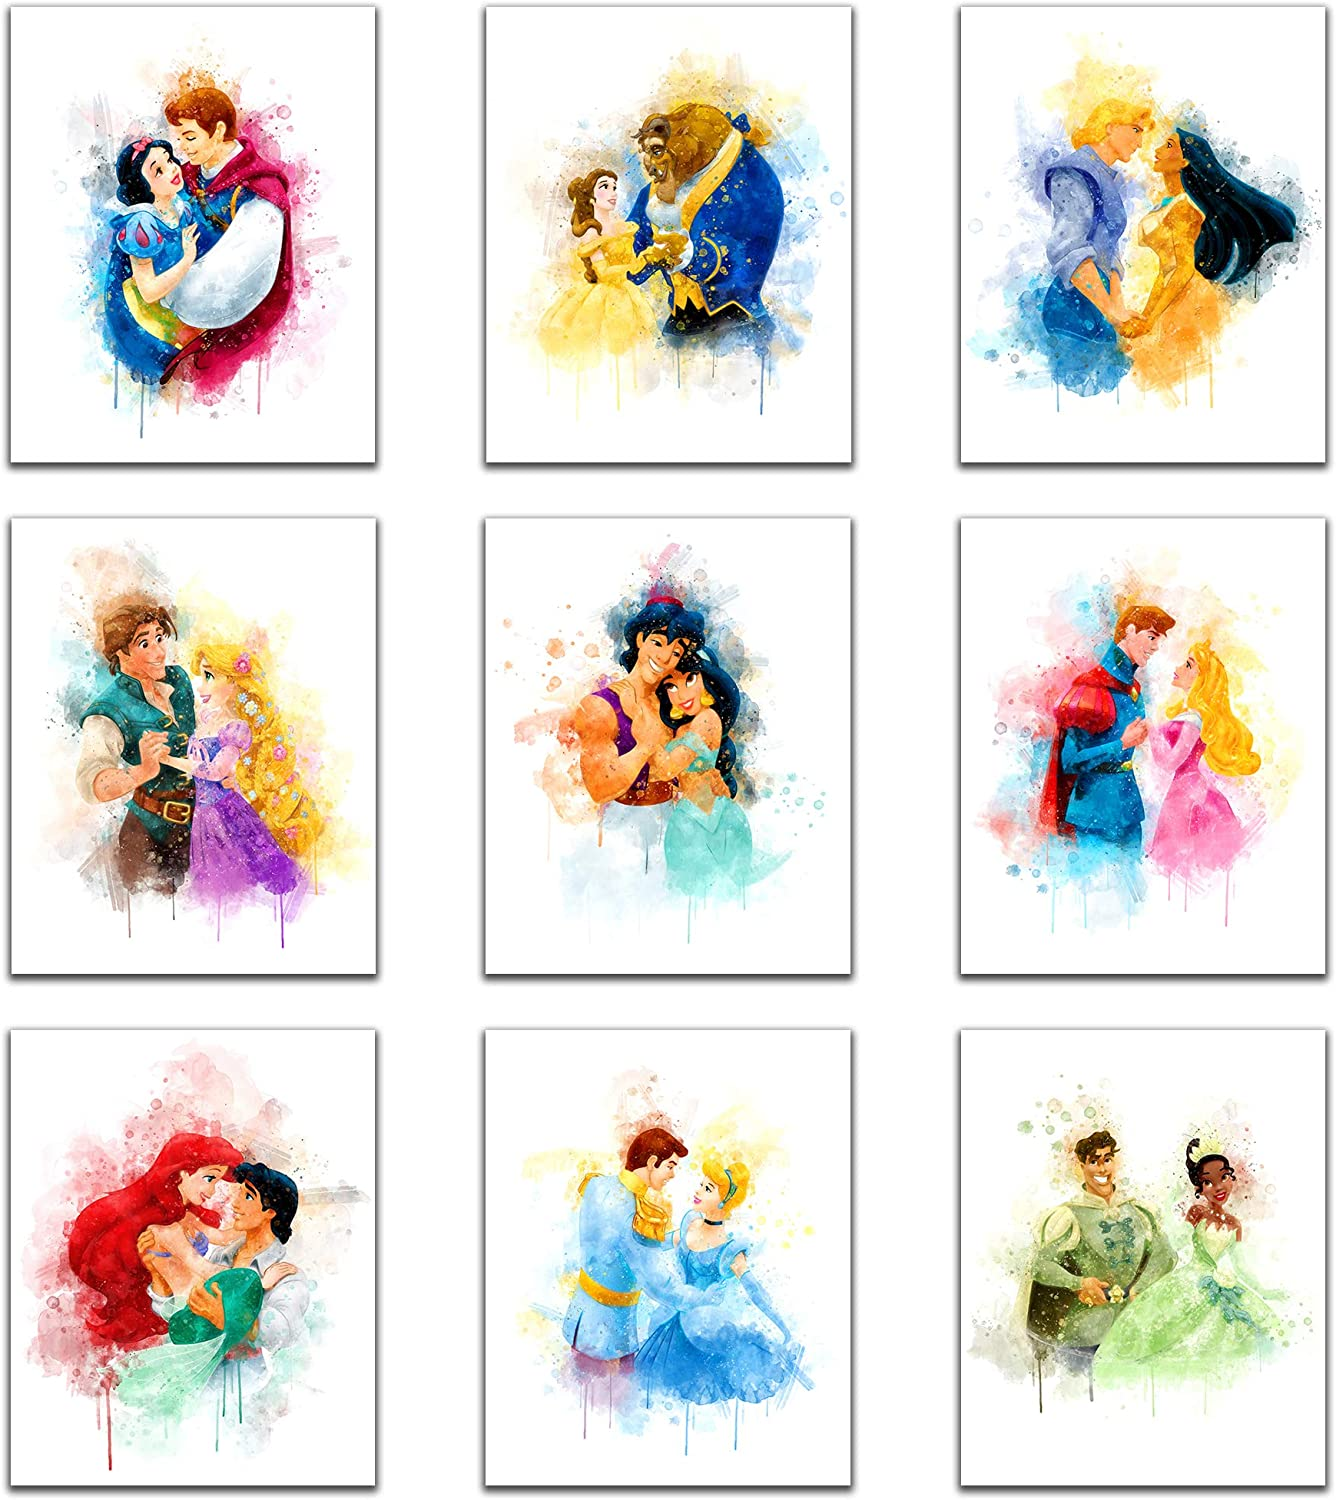 Princess Wall Art Decor Watercolor Prints - Unframed Set Of 9 (8 Inches X 10 Inches) - Princess Bedroom Decor, Princess Room Decor, Princess Wall Decor For Girls Bedroom, Poster for Baby Shower Decorations (8x10 inch)